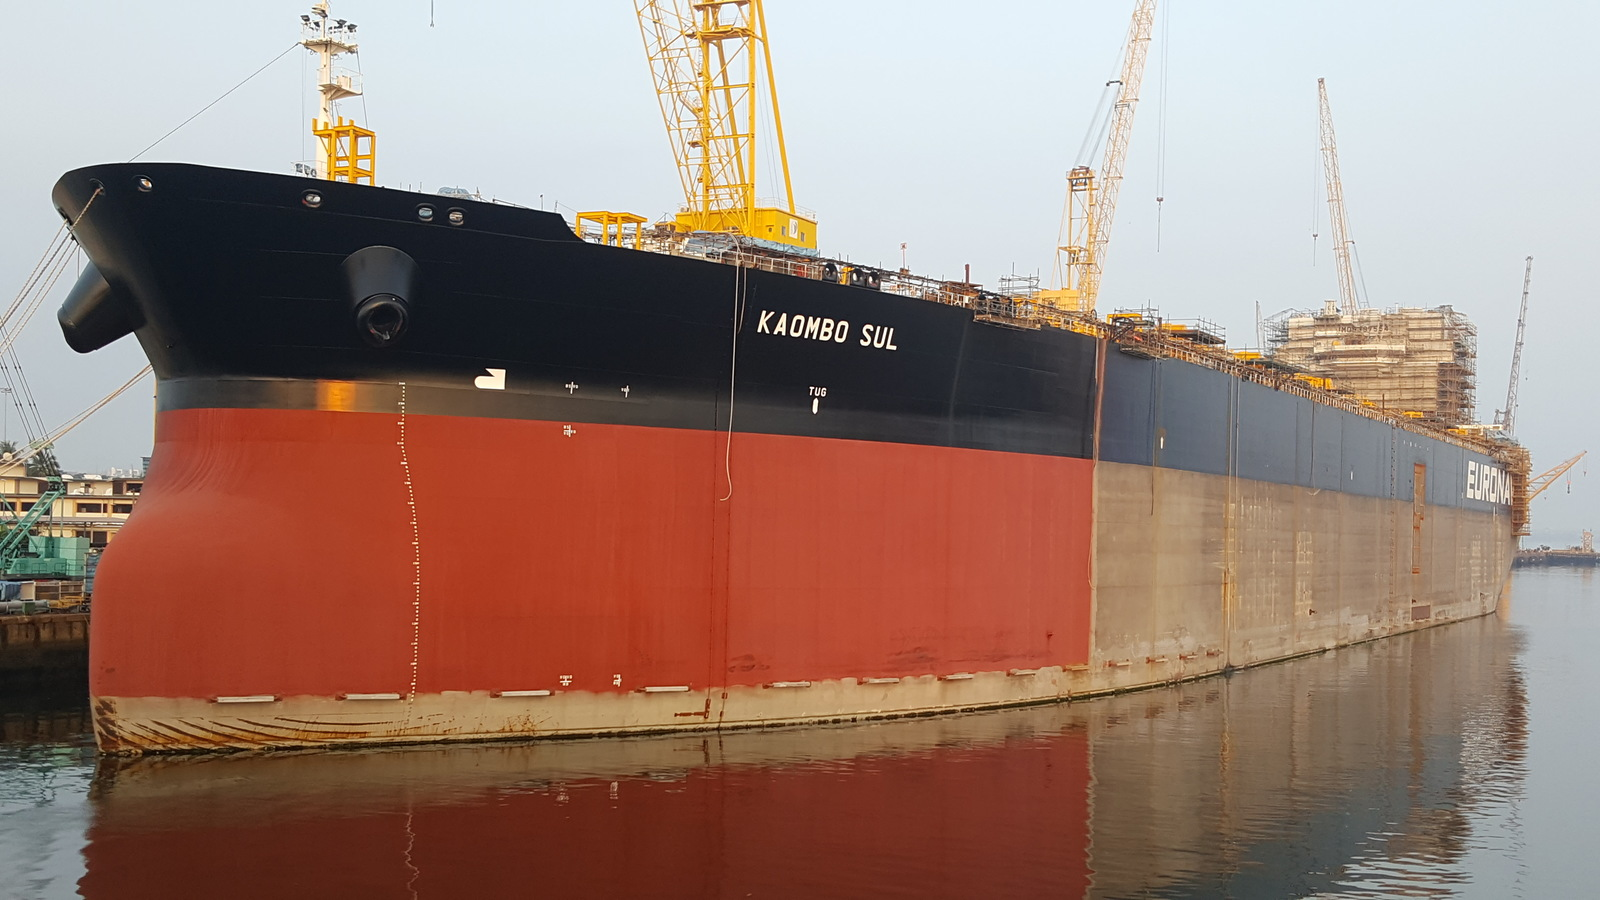 Kaombo Sul in Sembawang Shipyard, Singapore - March, 2017